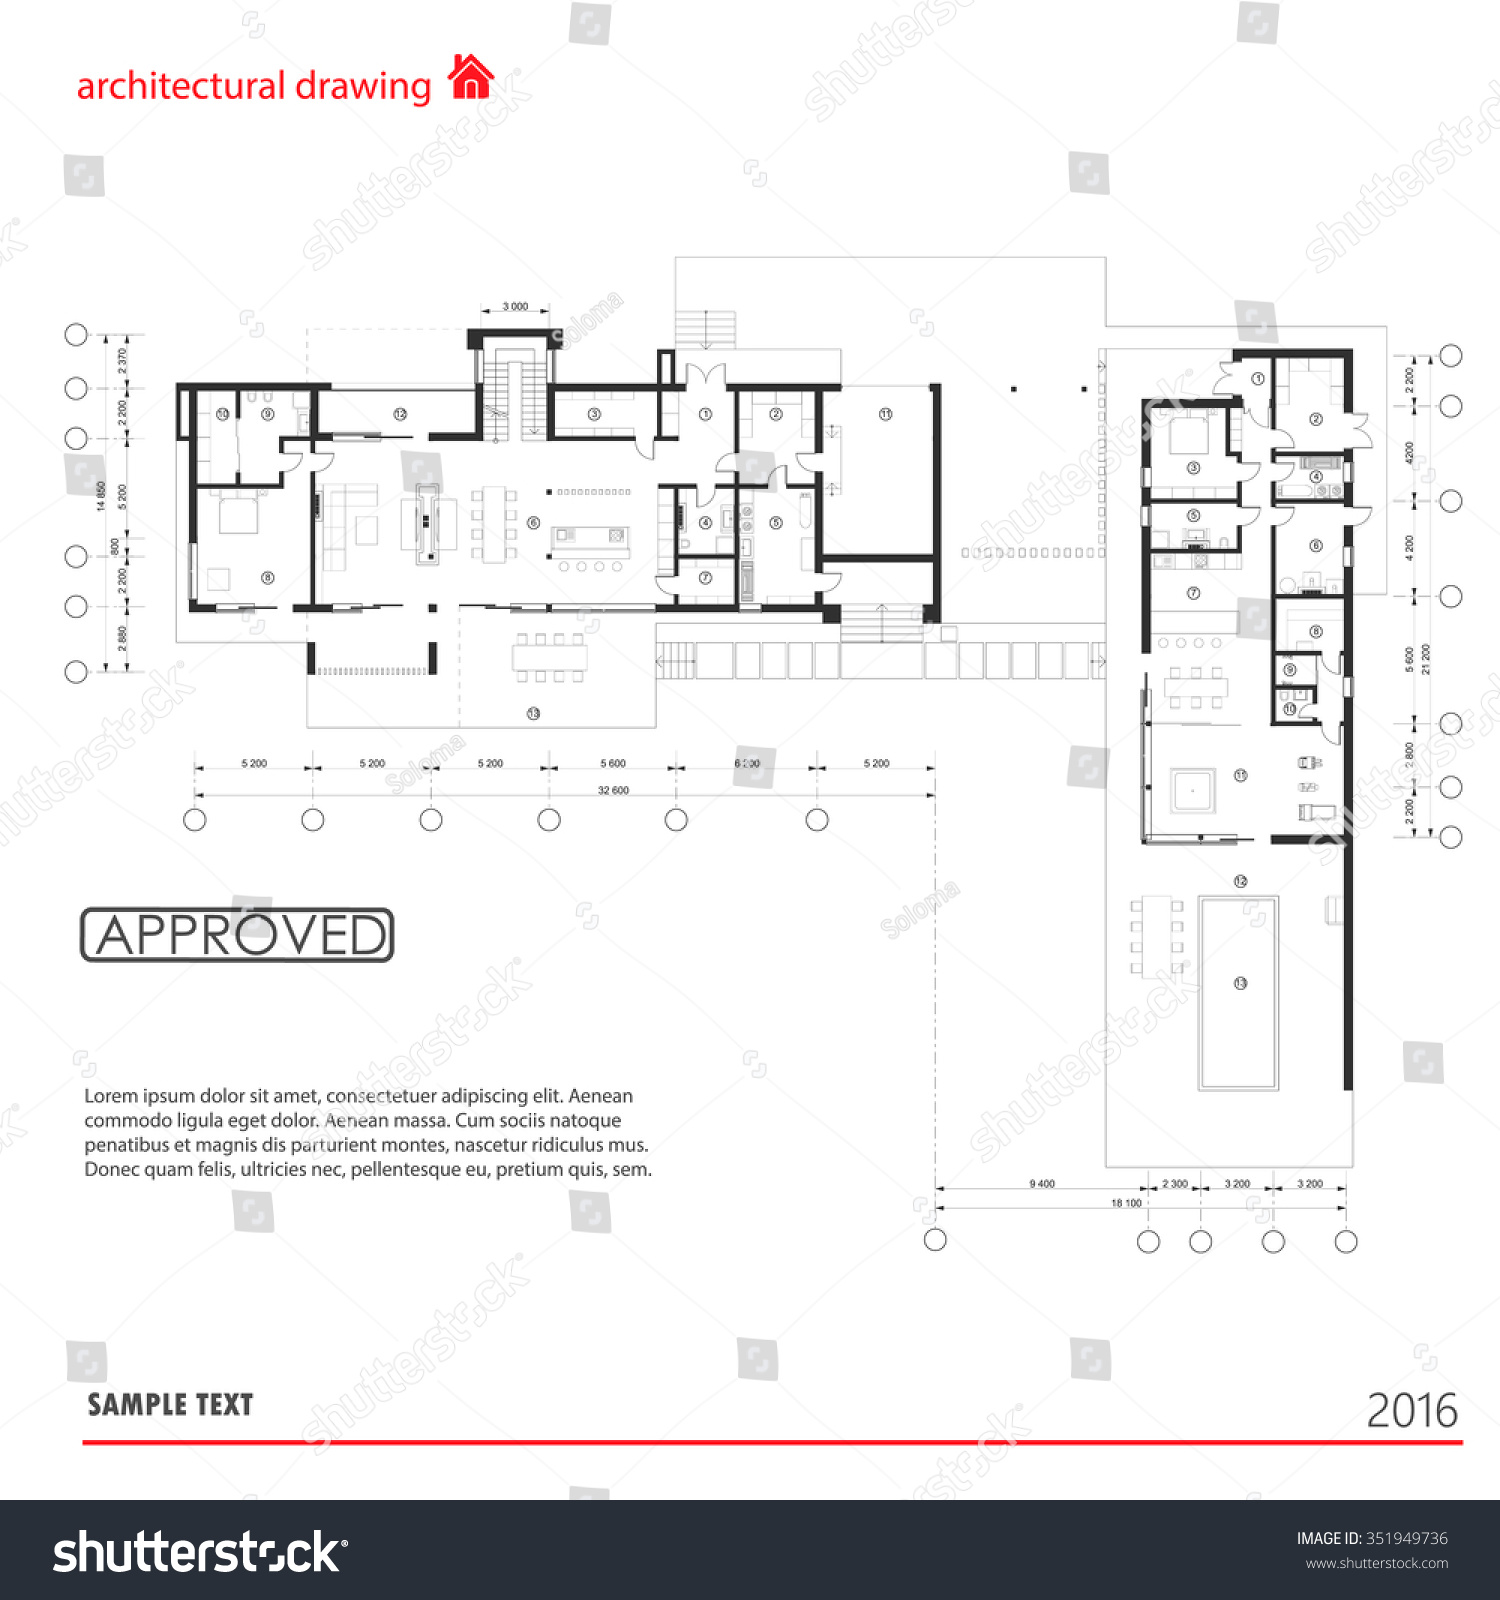 architectural drawings. Architectural Drawing, Plan, Background. Theme. Working Drawings